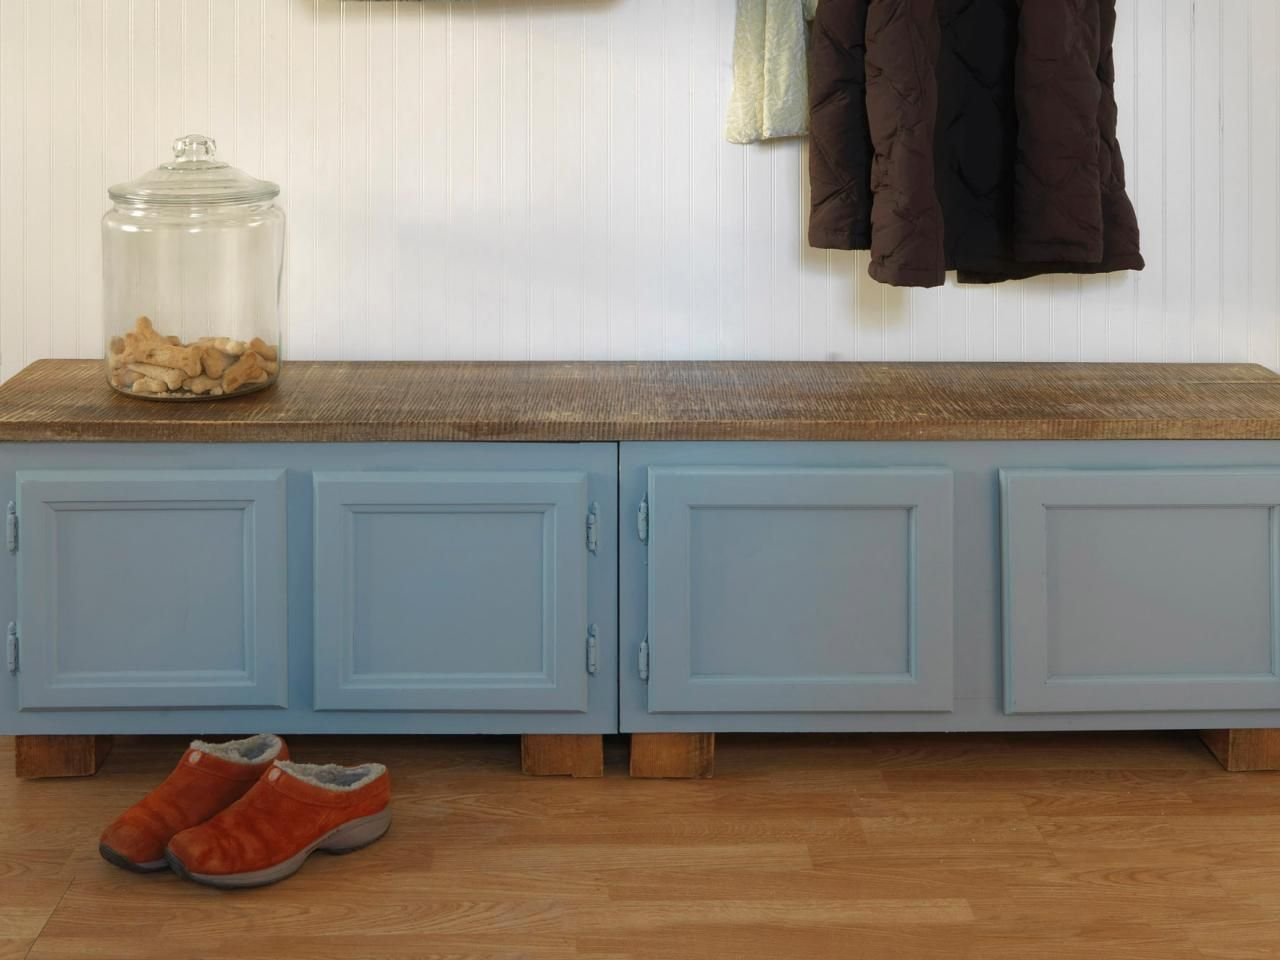 How to make a mudroom bench using old kitchen cabinets for Building a mudroom bench